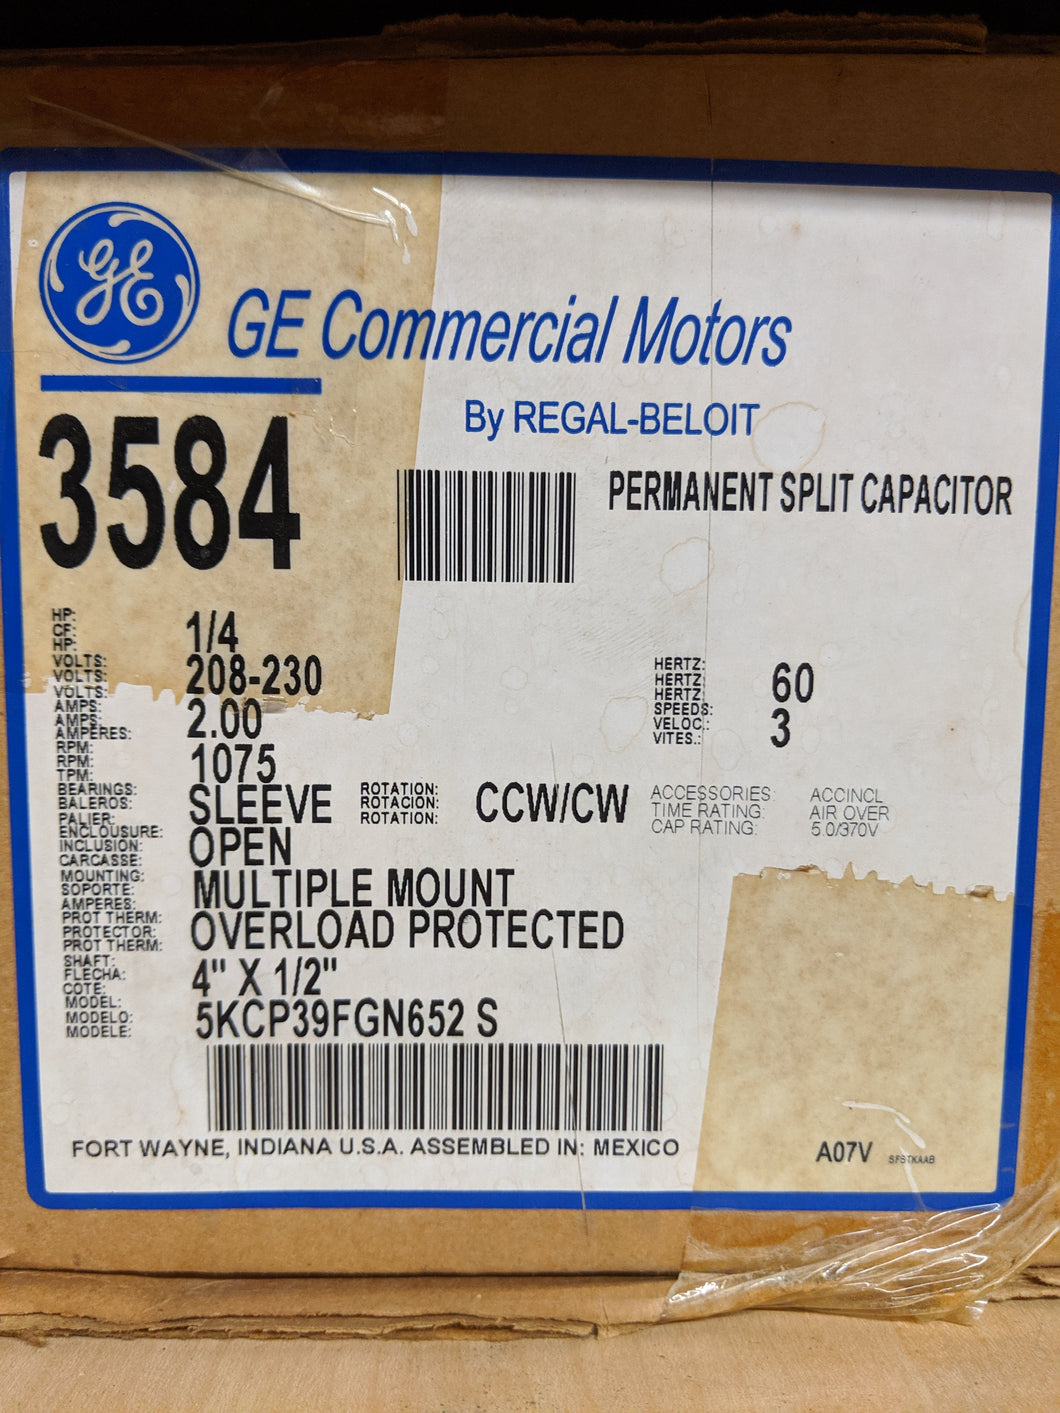 GE 3584, 1/4 HP, 208-230 Volts, 5KCP39FGN652S